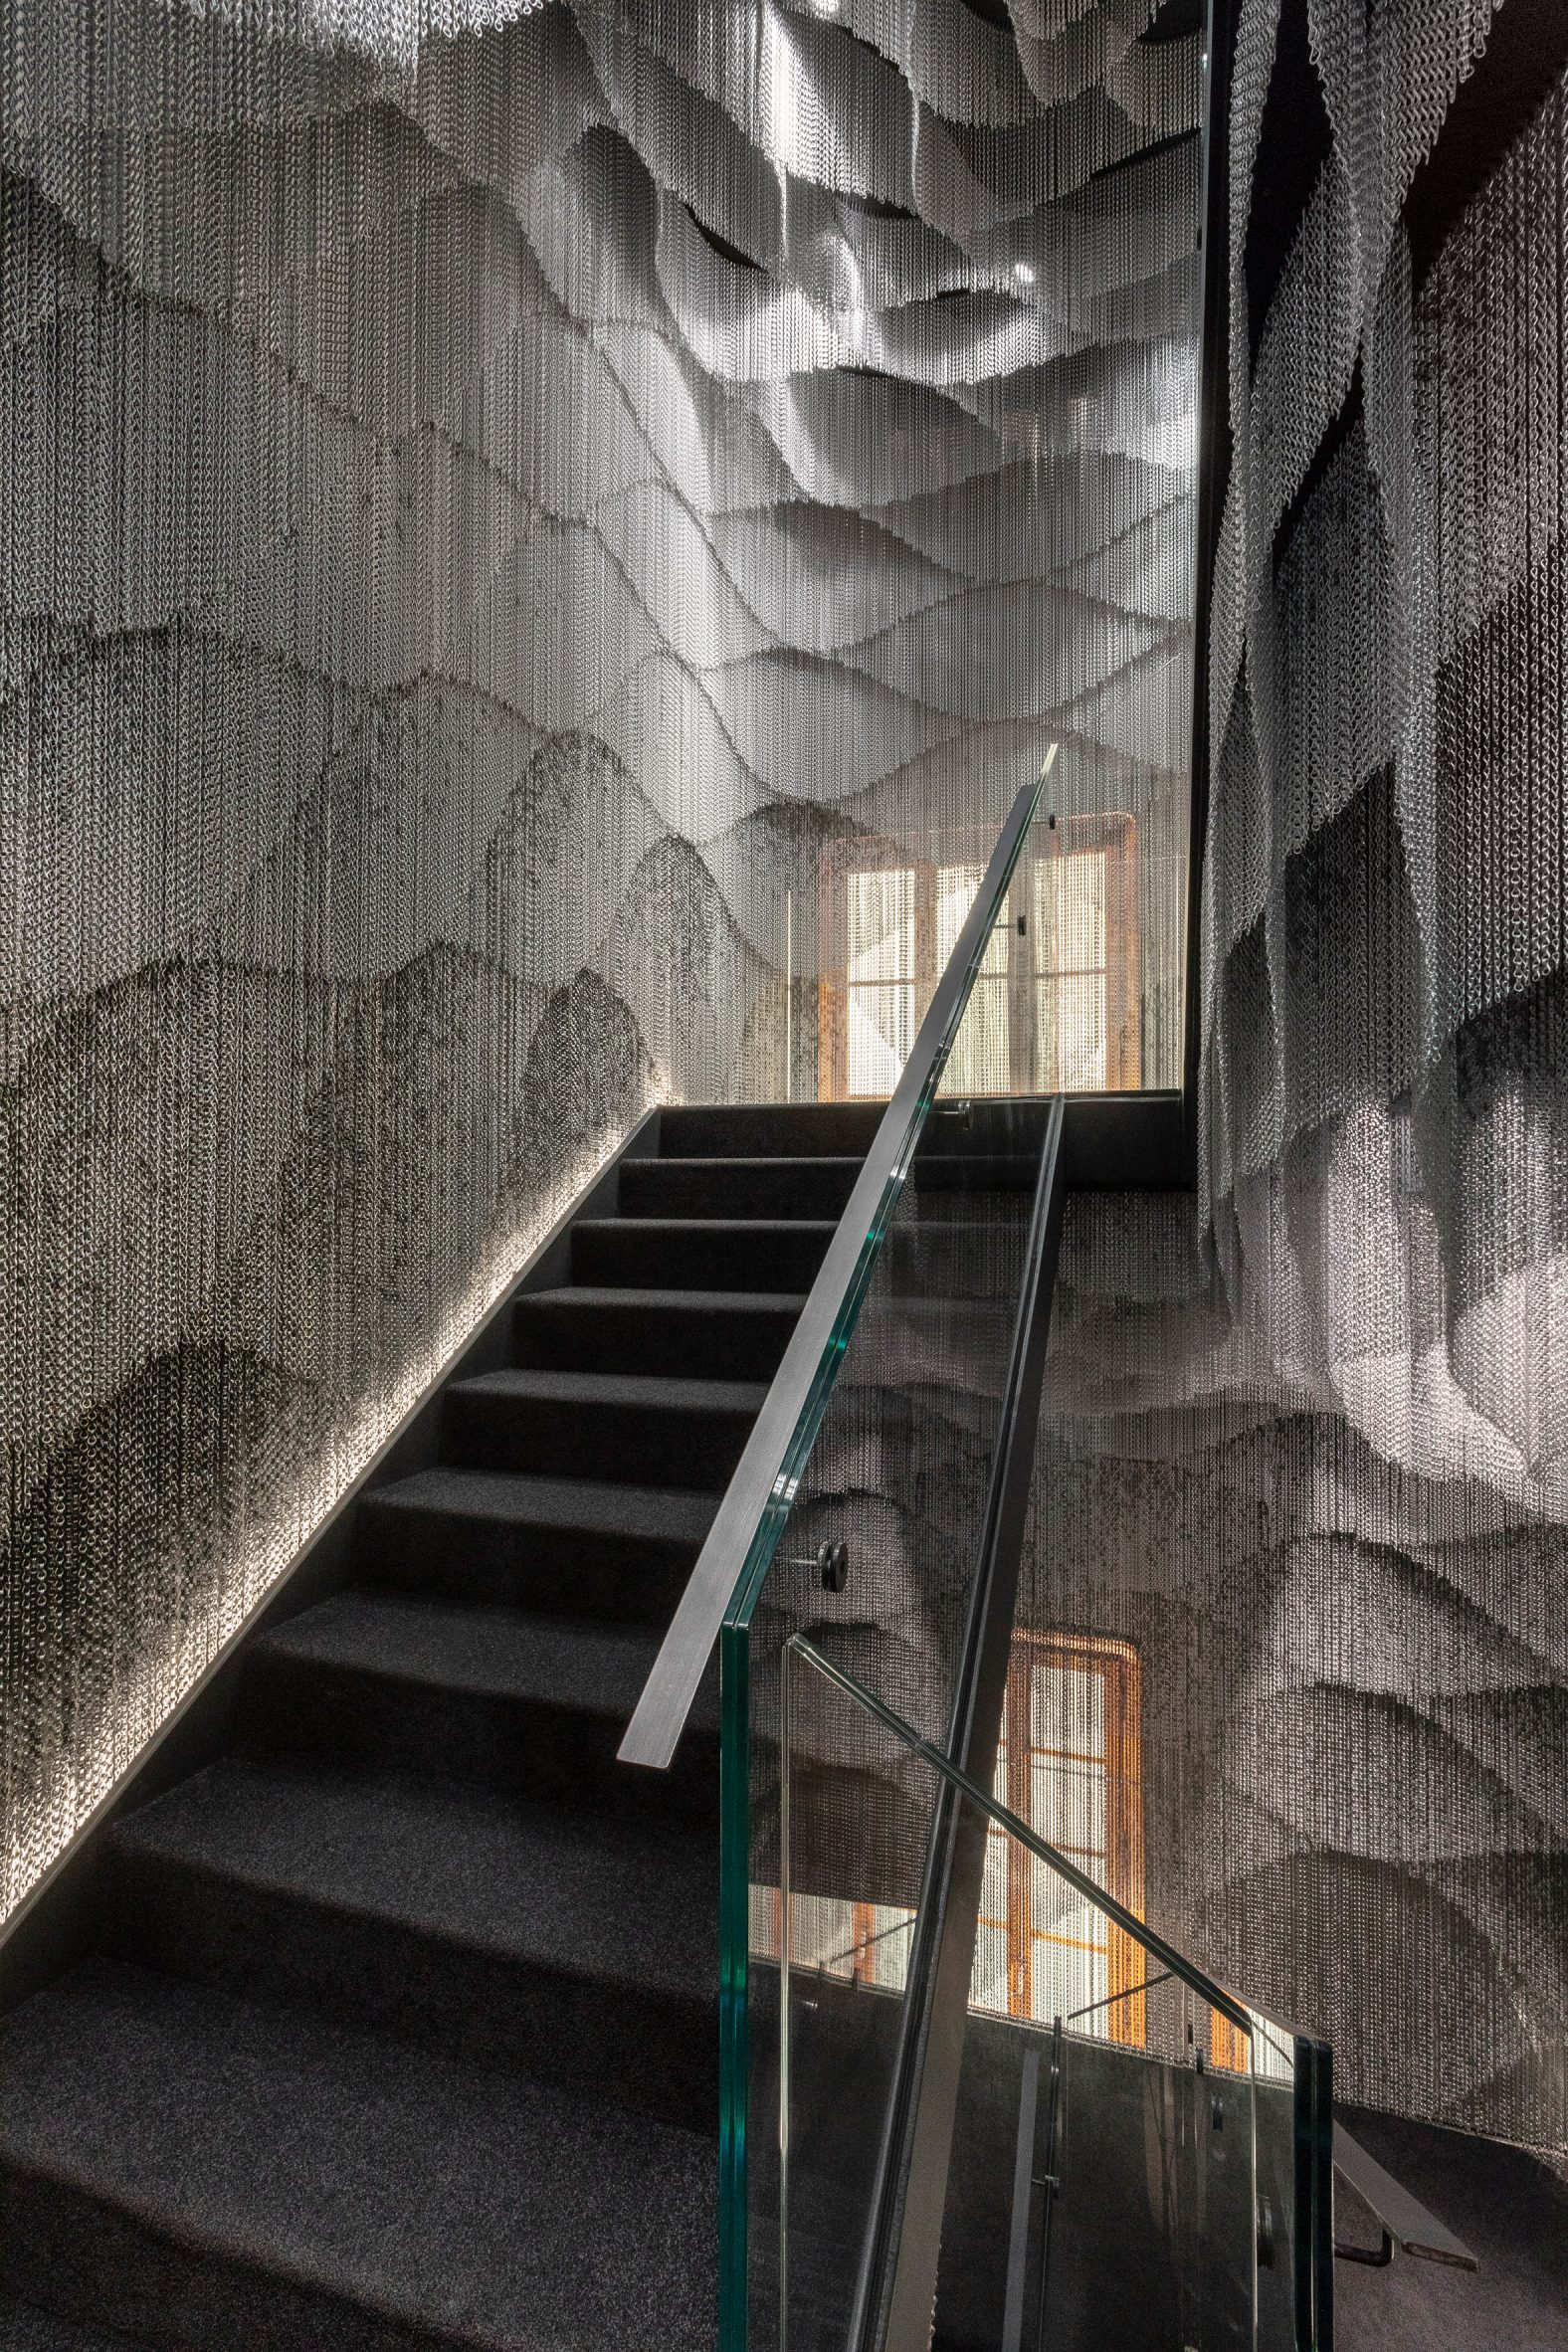 A staircase surrounded by metal-mesh